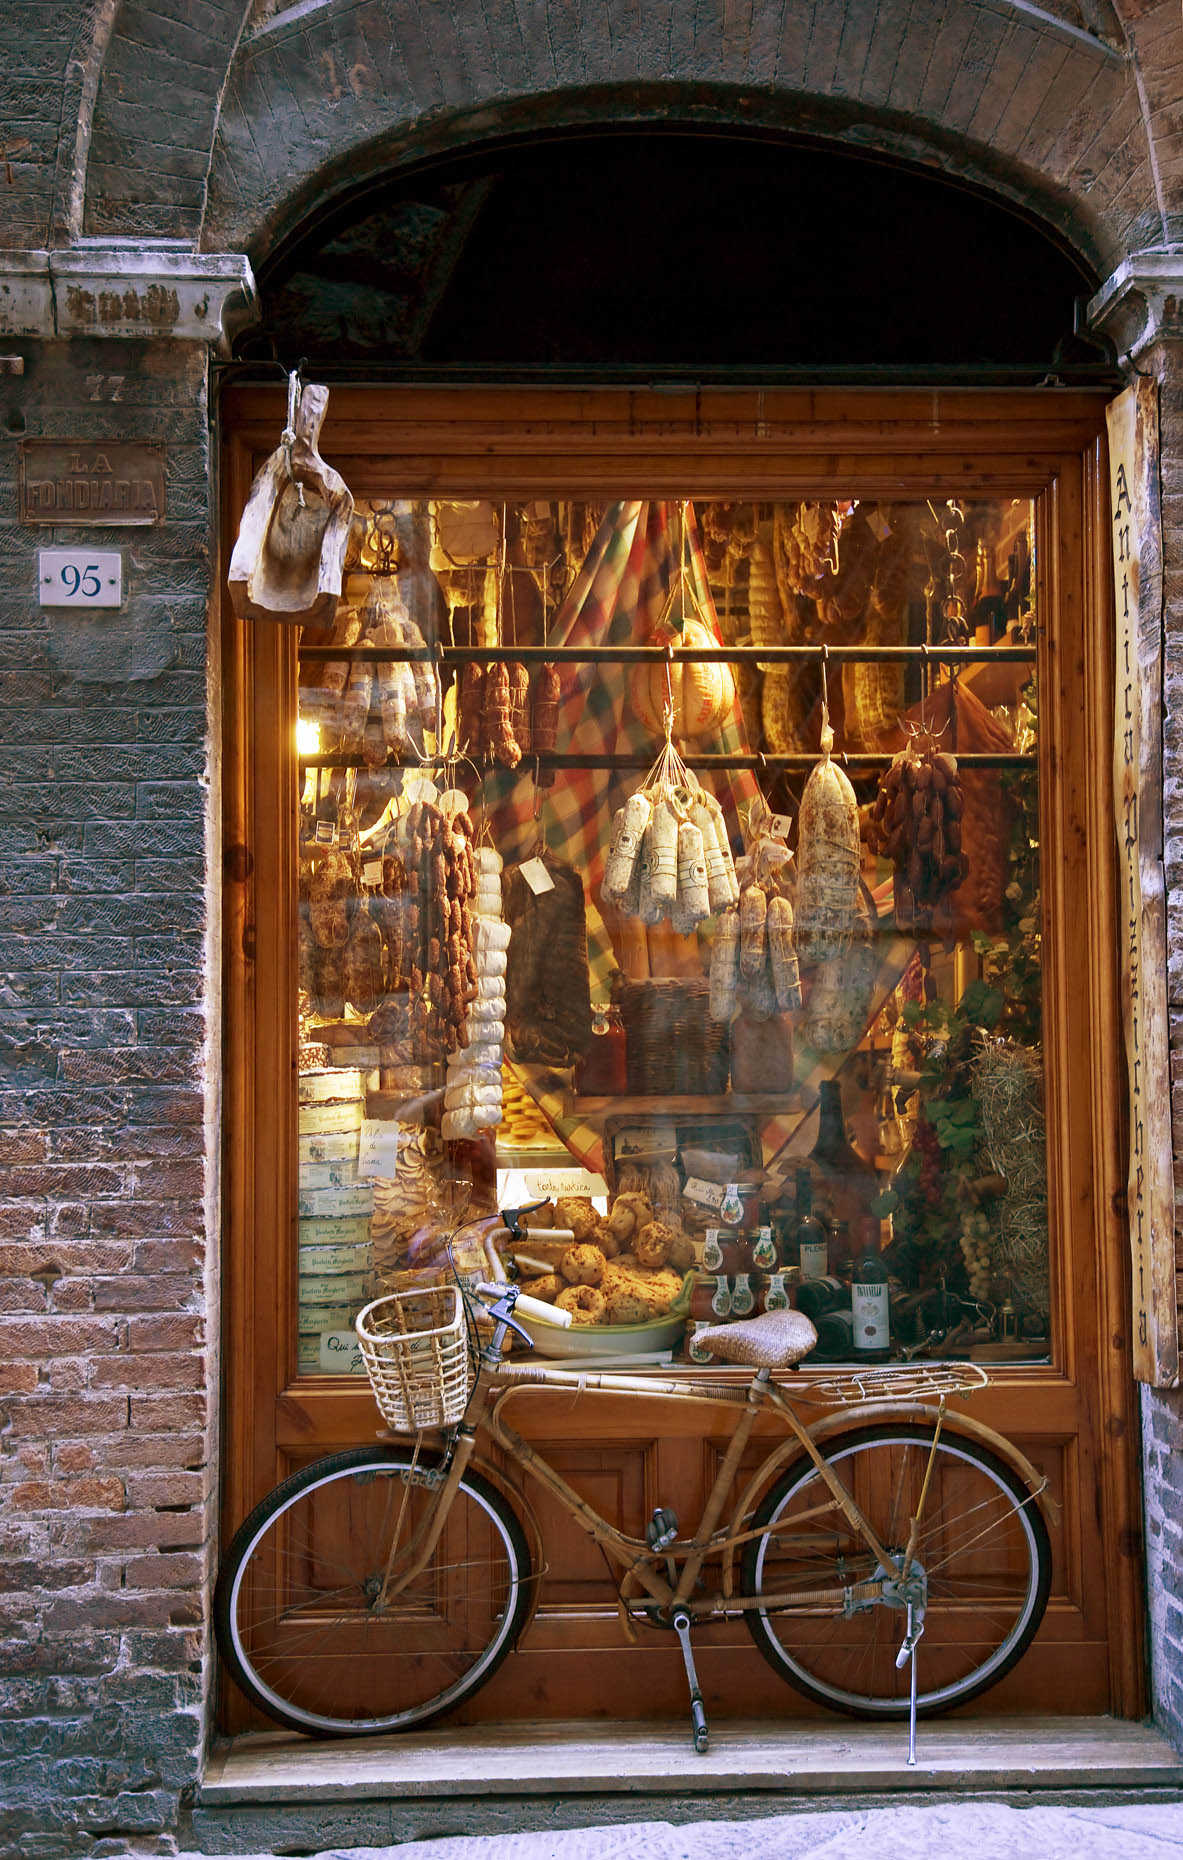 Bicycle in front of butcher food shop food in Siena Italy